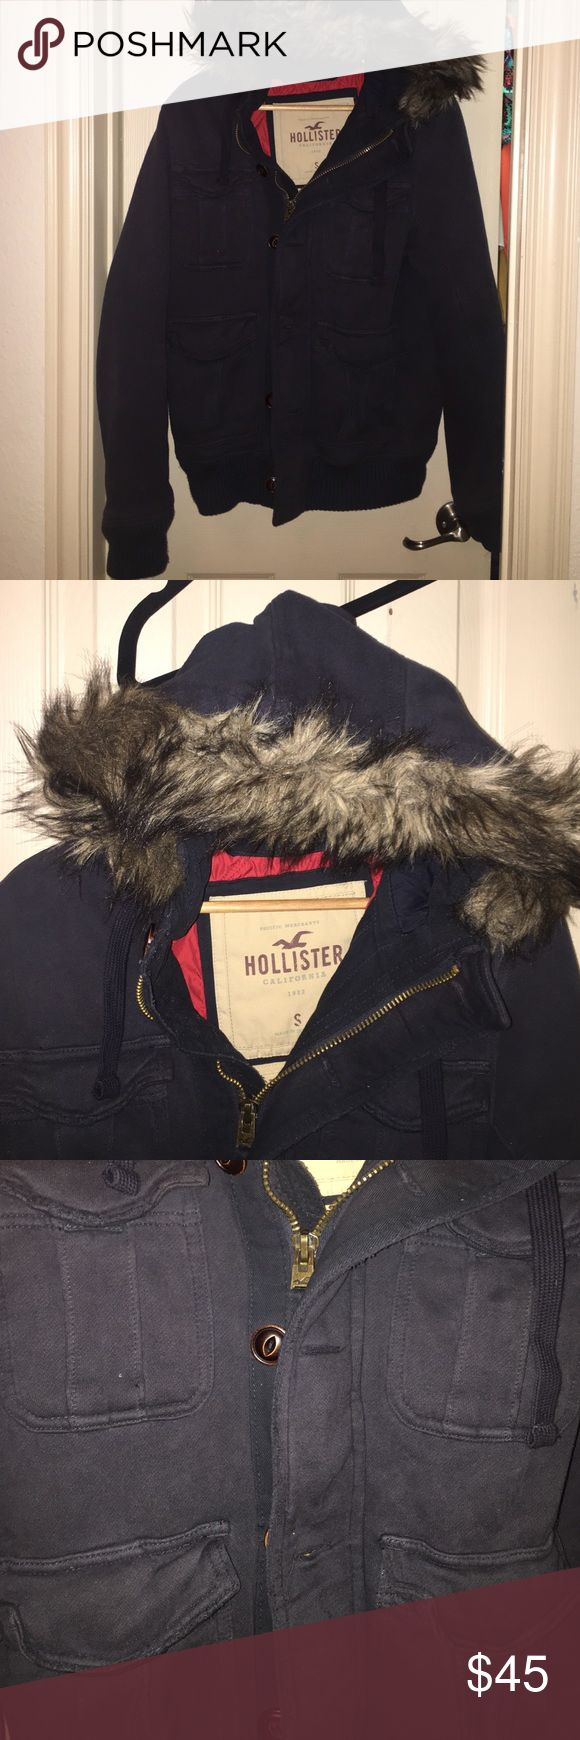 Hollister Jacket with Fuzzy Hood Hollister Jacket with Fuzzy Hood Hollister Jackets & Coats